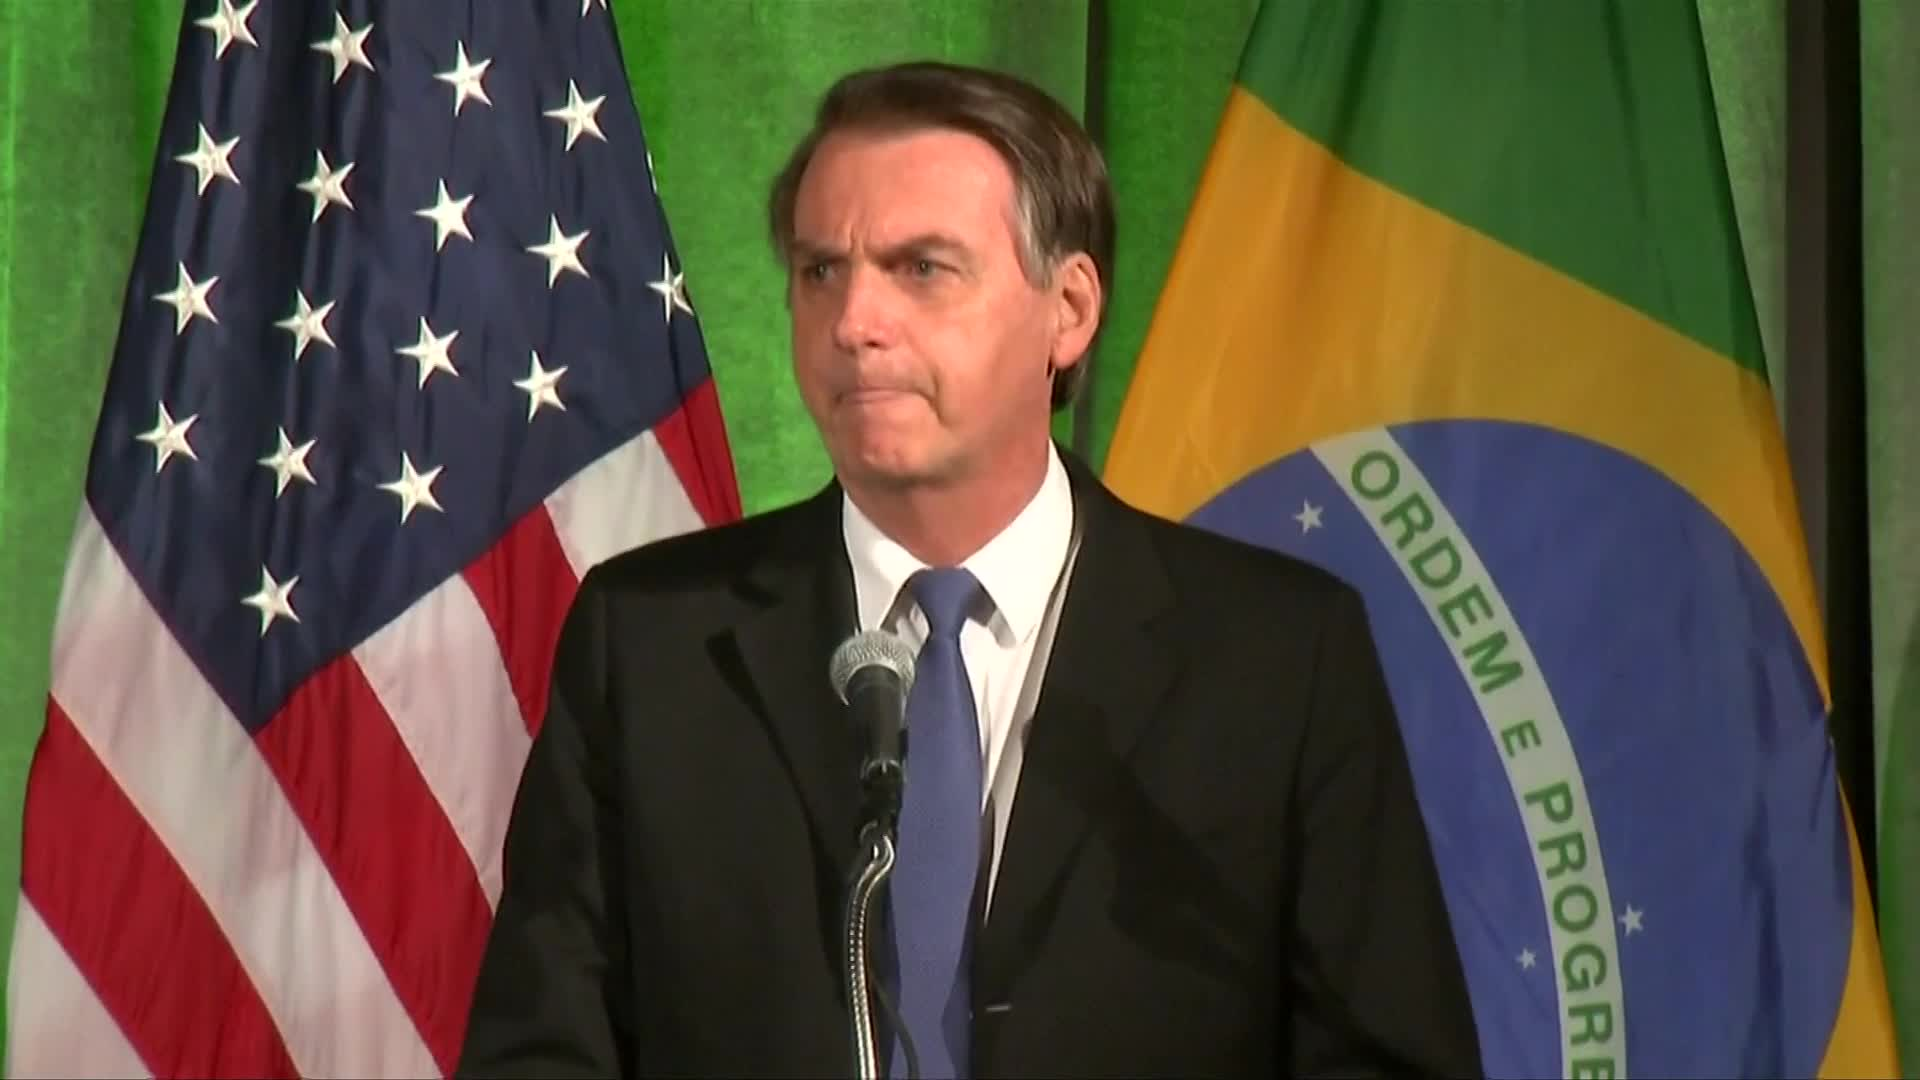 Politics - Jair Bolsonaro Talks Fake News Ahead Of White House Meeting